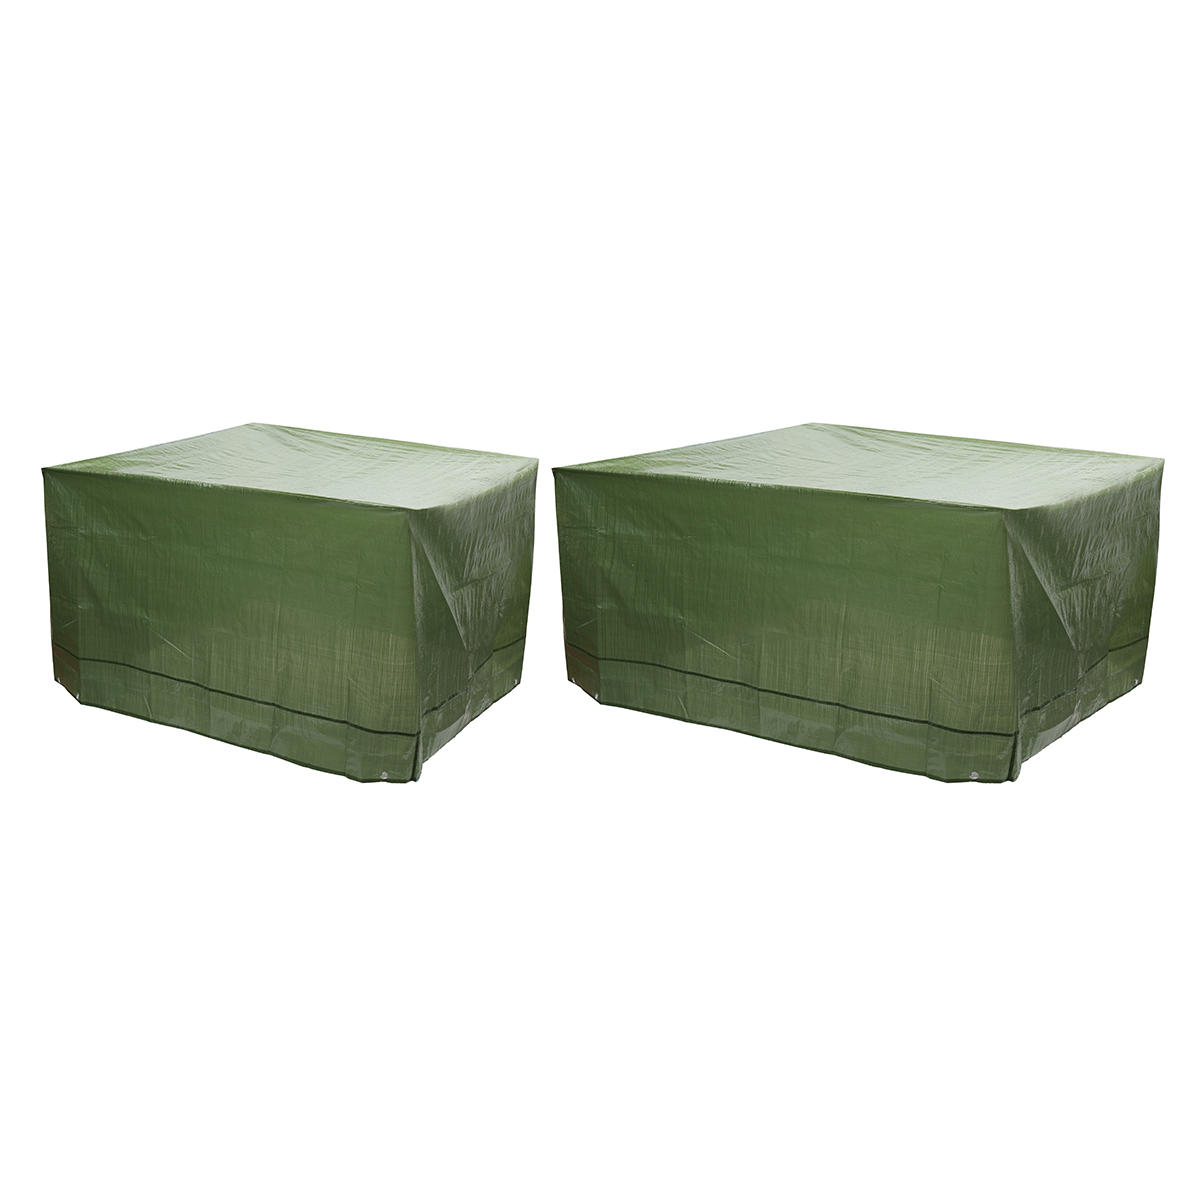 Single New PE Woven Durable Garden Furniture Dustproof And Waterproof Cover ArmyGreen